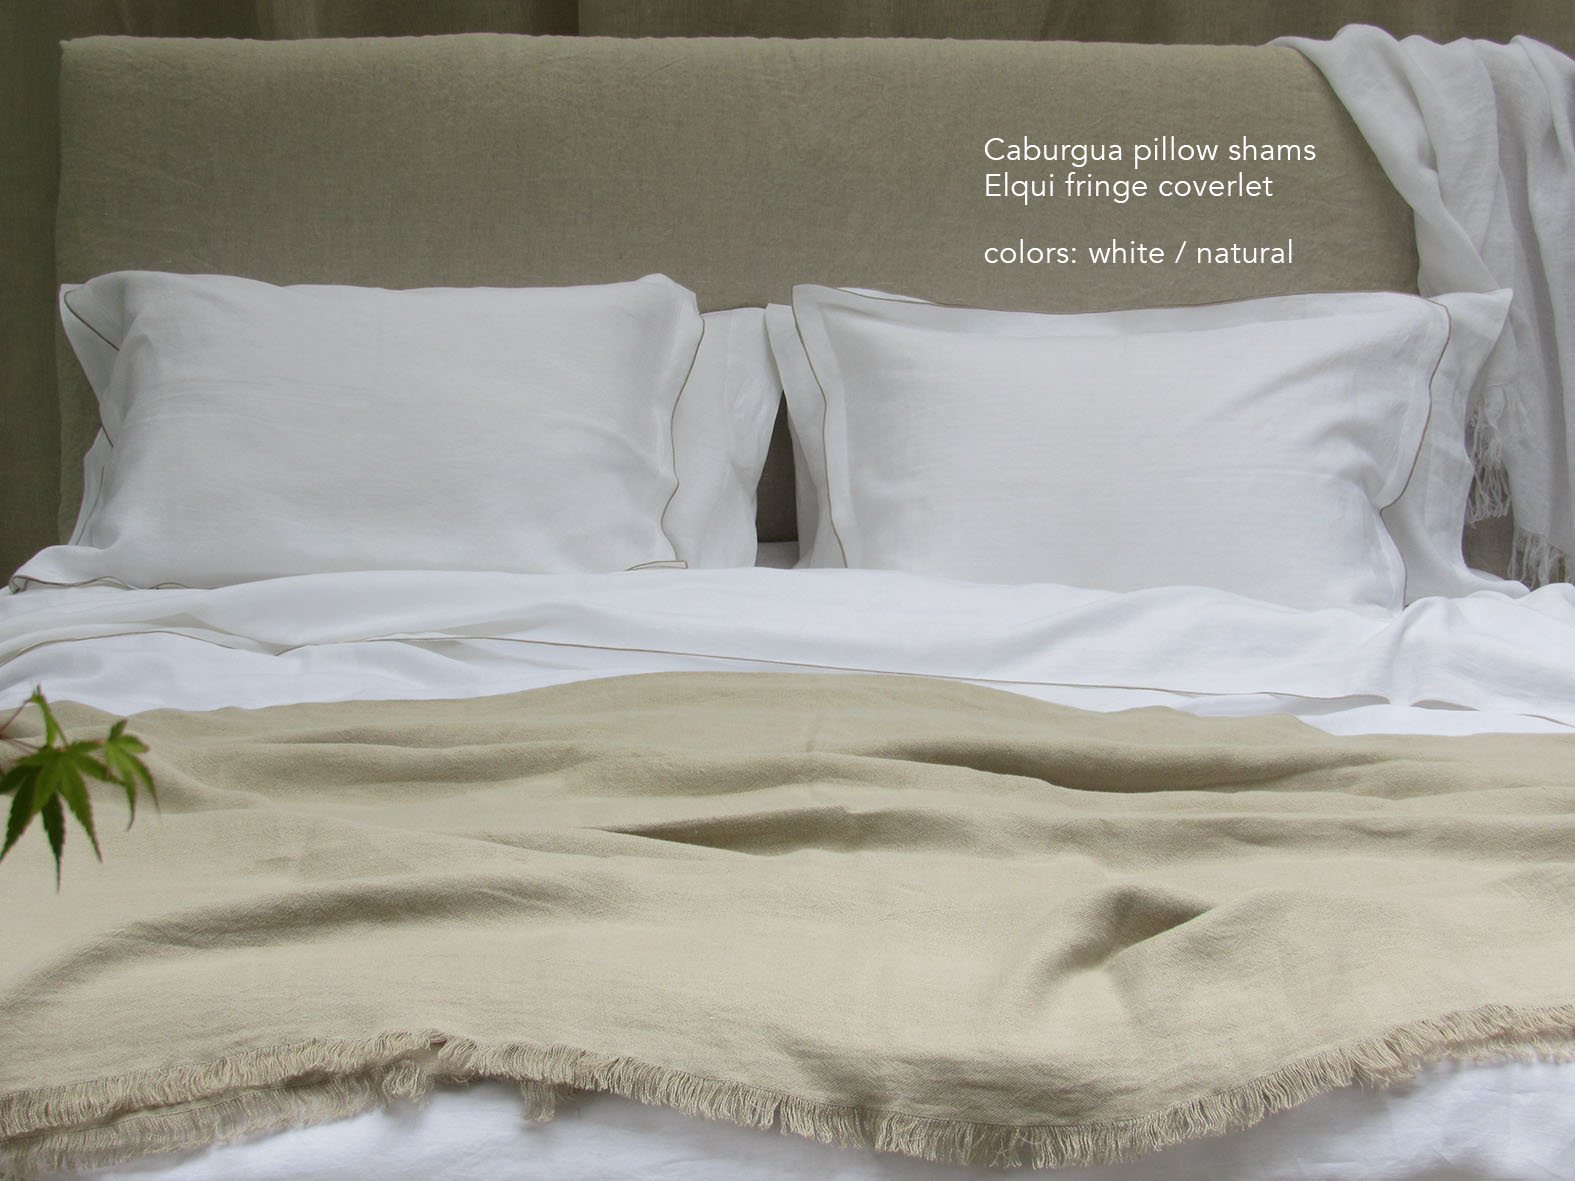 5. Colomba Living Bed .jpg